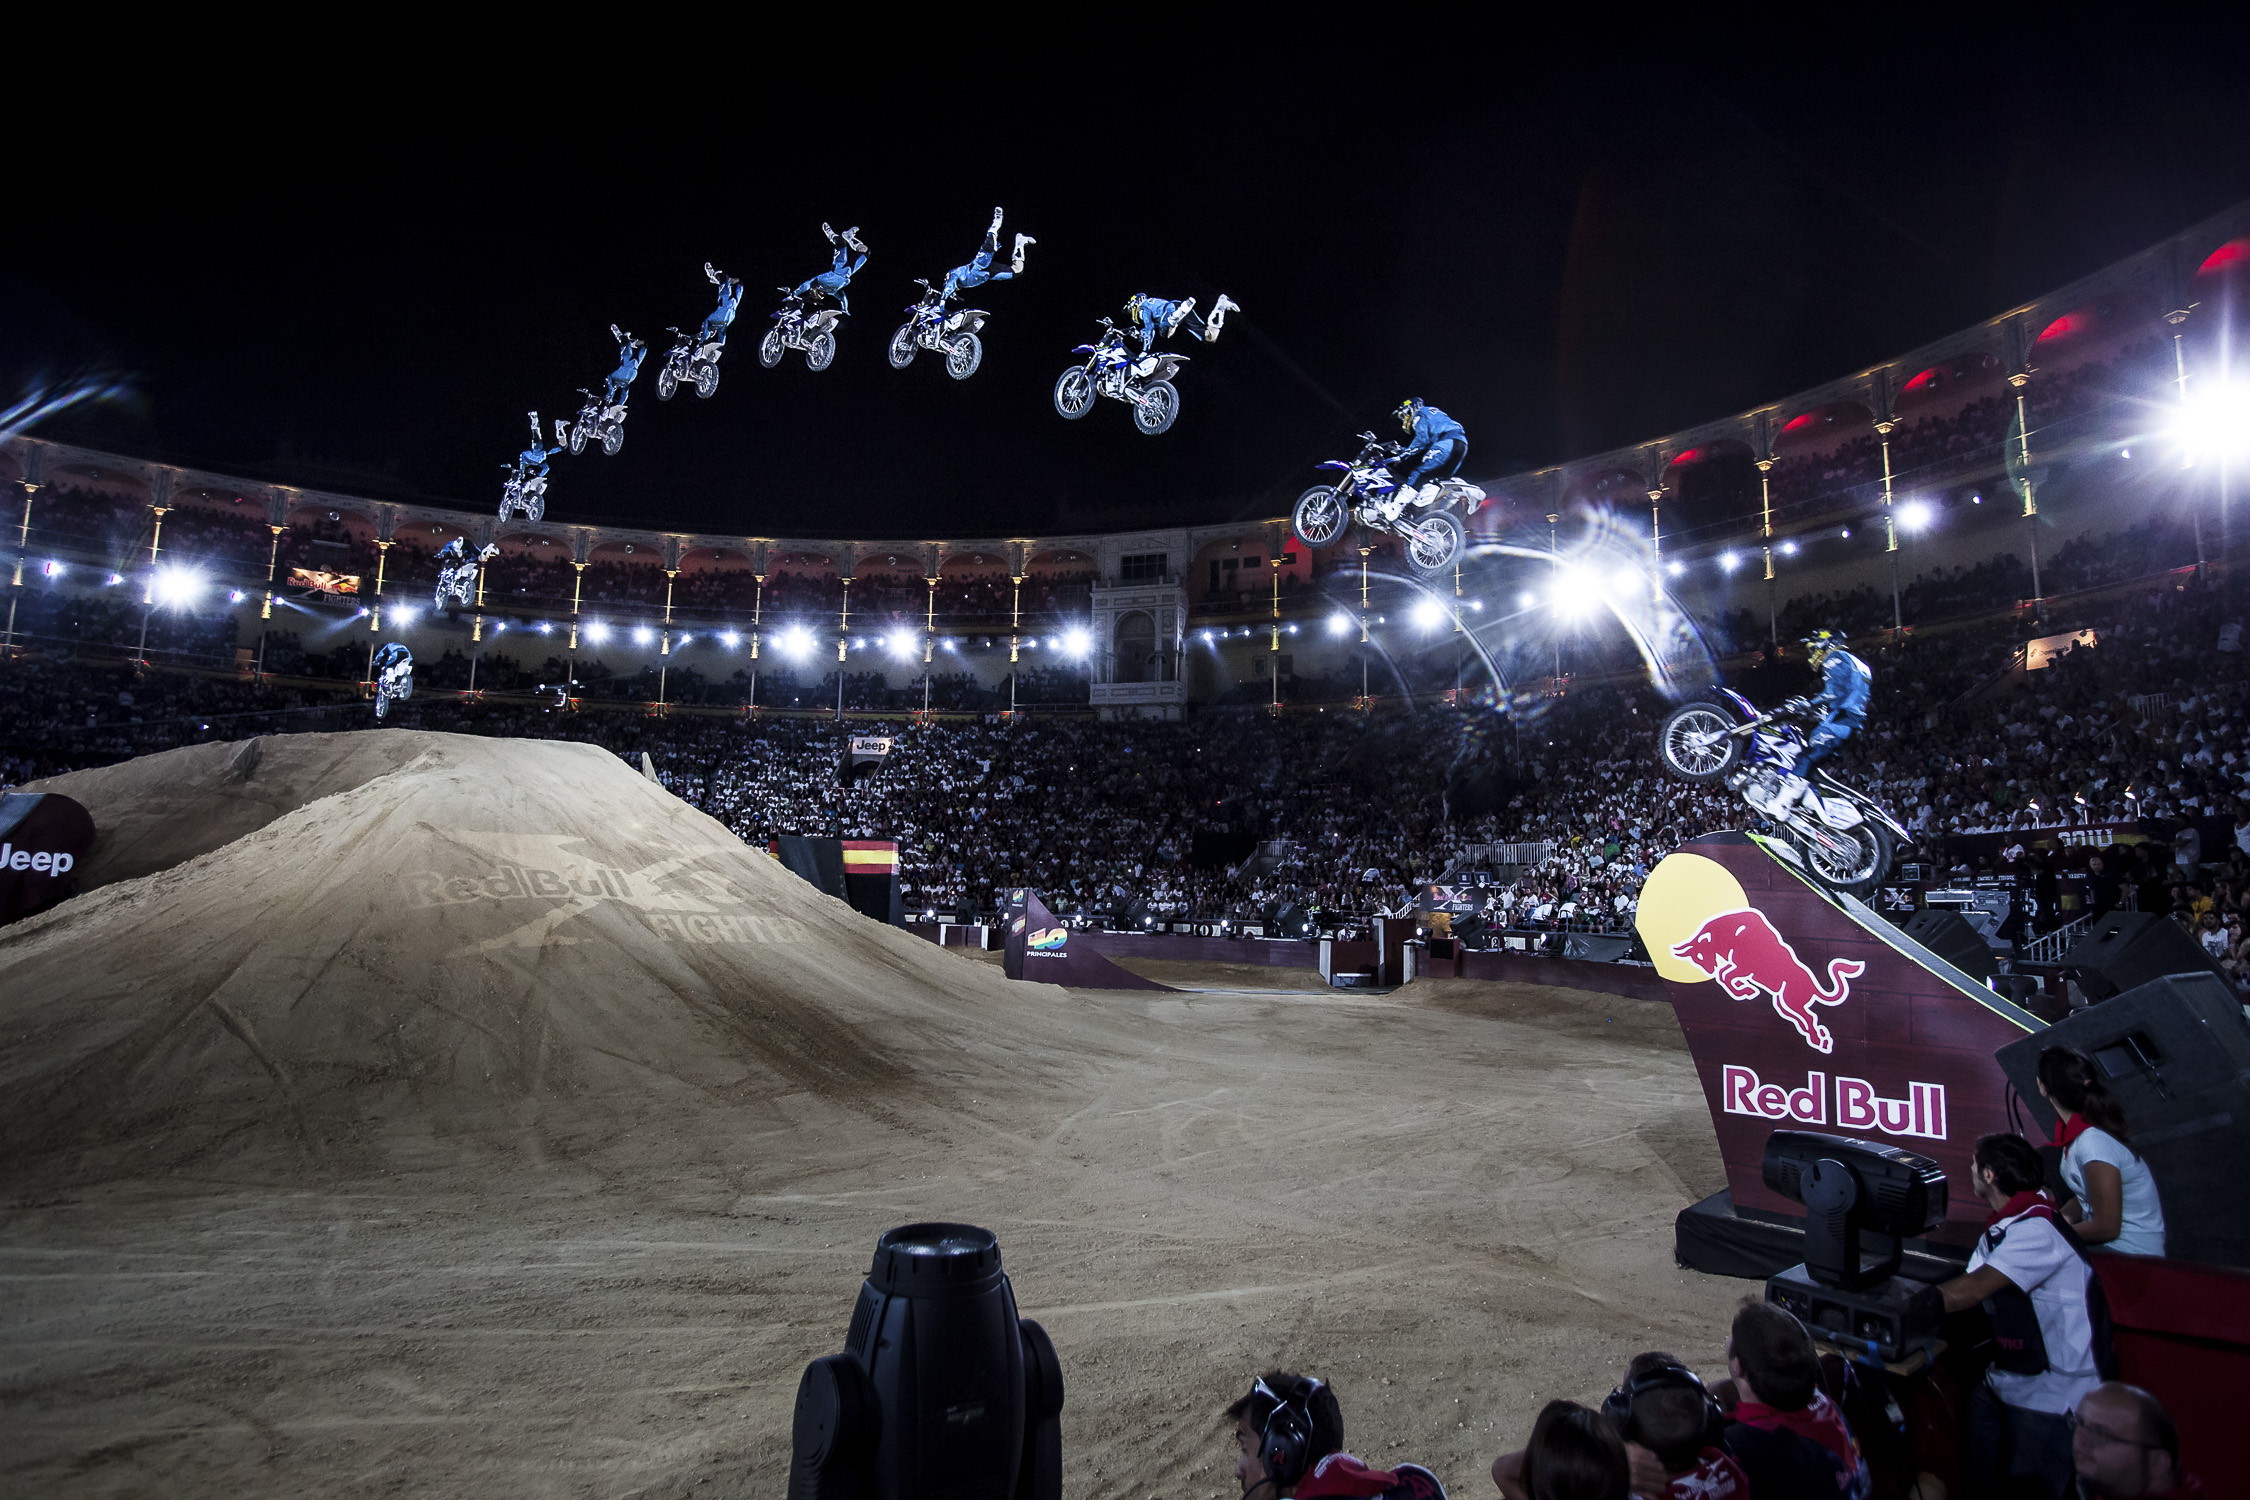 Motocross – X-Fighters Madrid